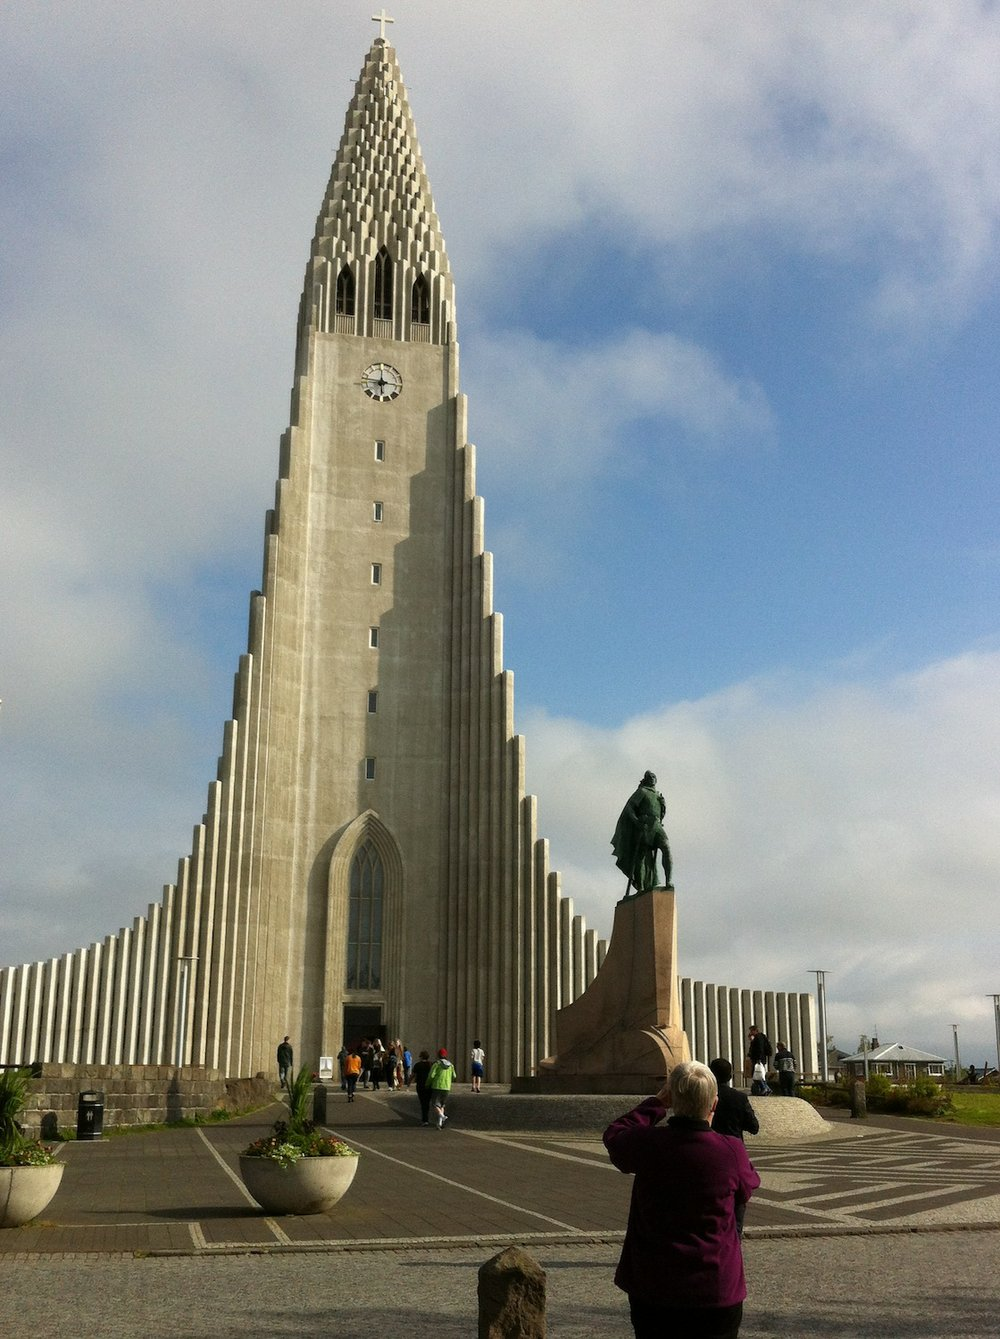 Reykjavik's Hallgrímskirkja, the largest church in Iceland, with Leif Ericcson statue.